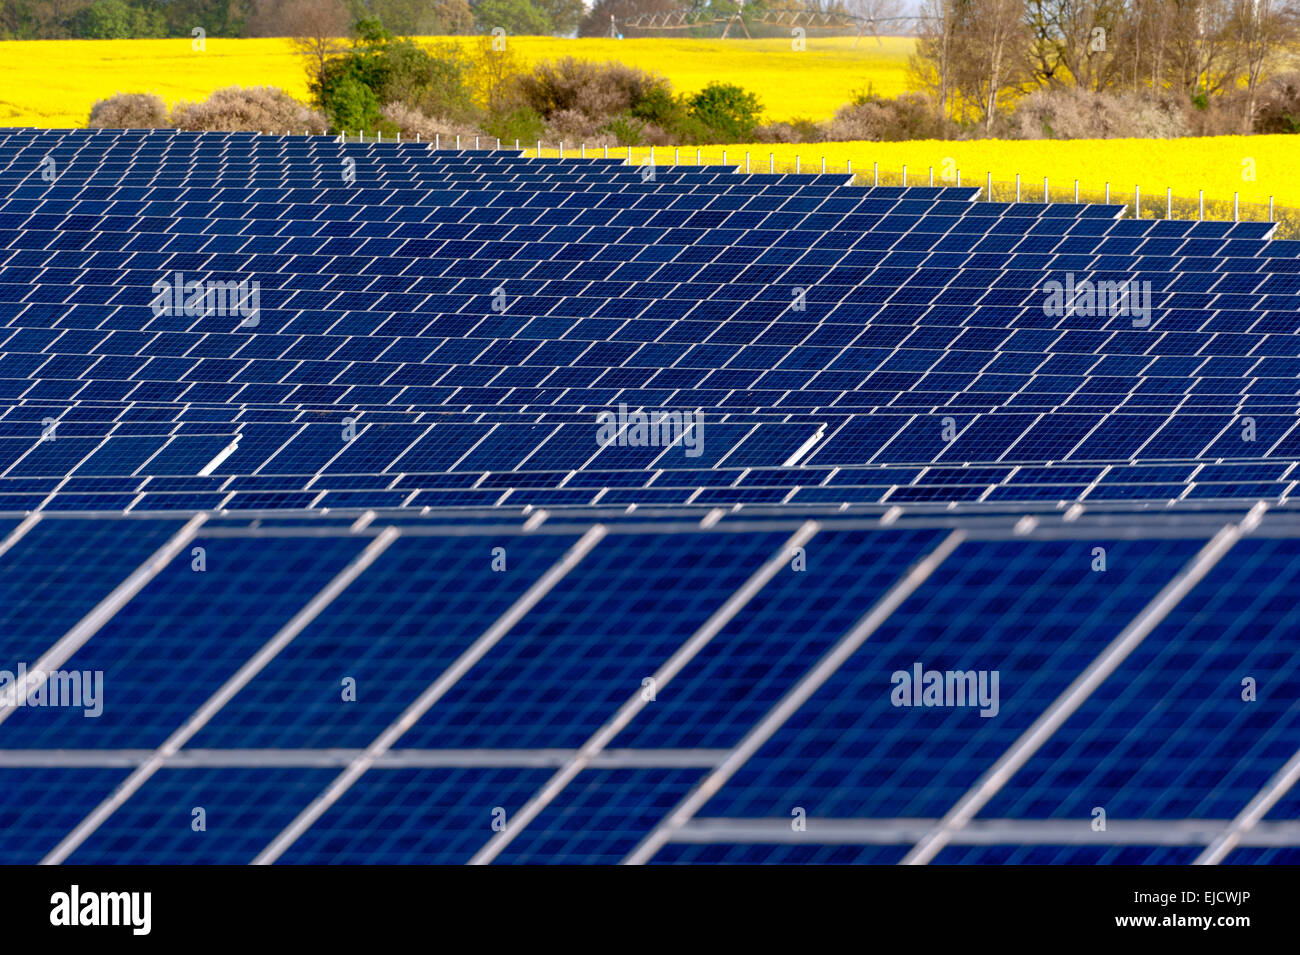 Solar panels in a rapeseed field - Stock Image